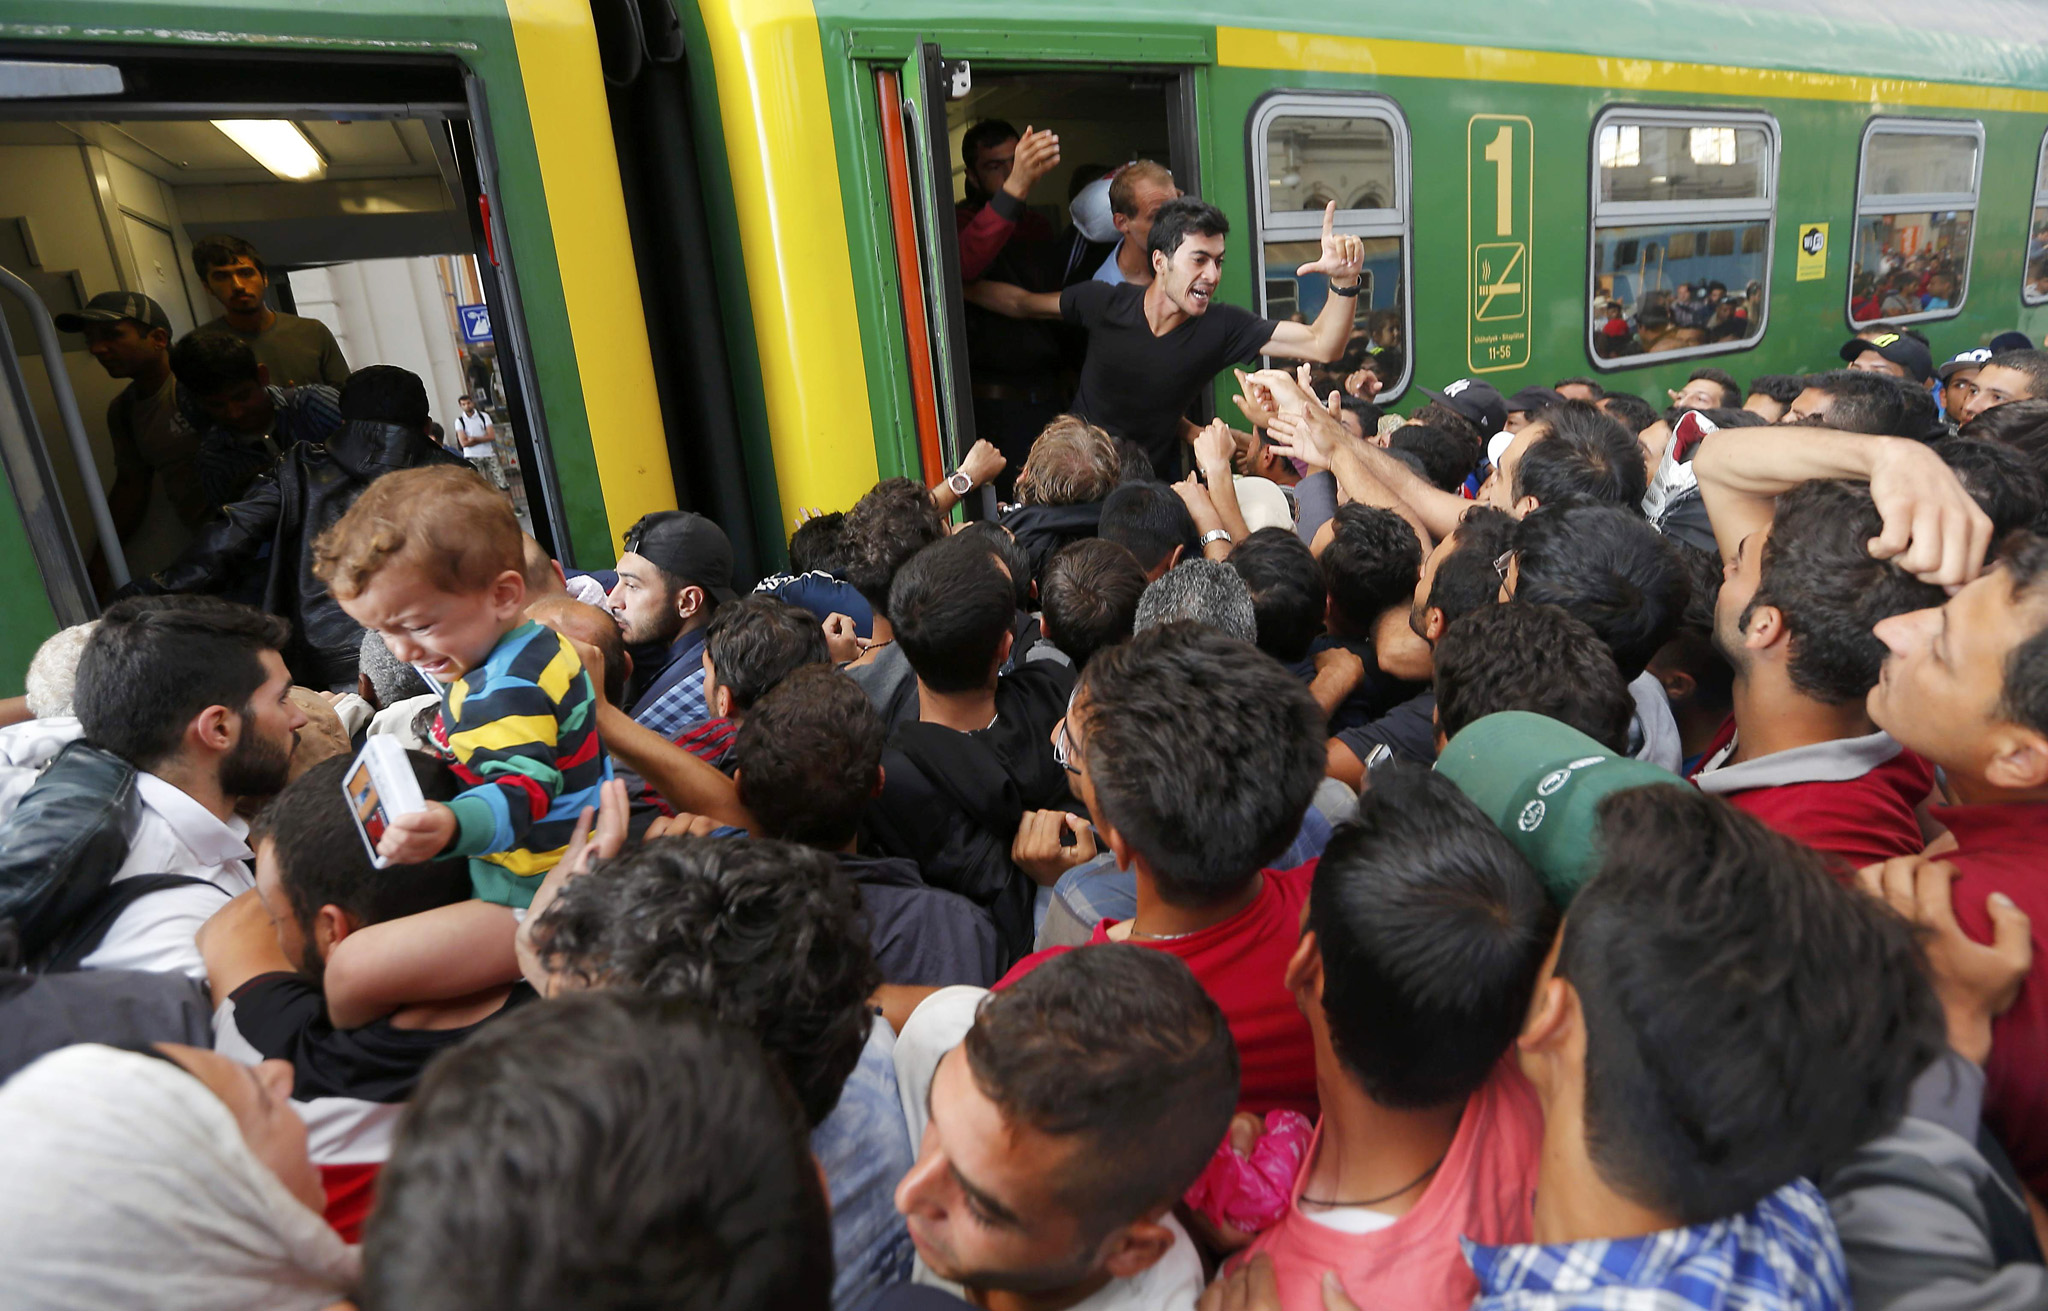 Migrants storm into a train at the Keleti train station in Budapest...Migrants storm into a train at the Keleti train station in Budapest, Hungary, September 3, 2015 as Hungarian police withdrew from the gates after two days of blocking their entry.      REUTERS/Laszlo Balogh